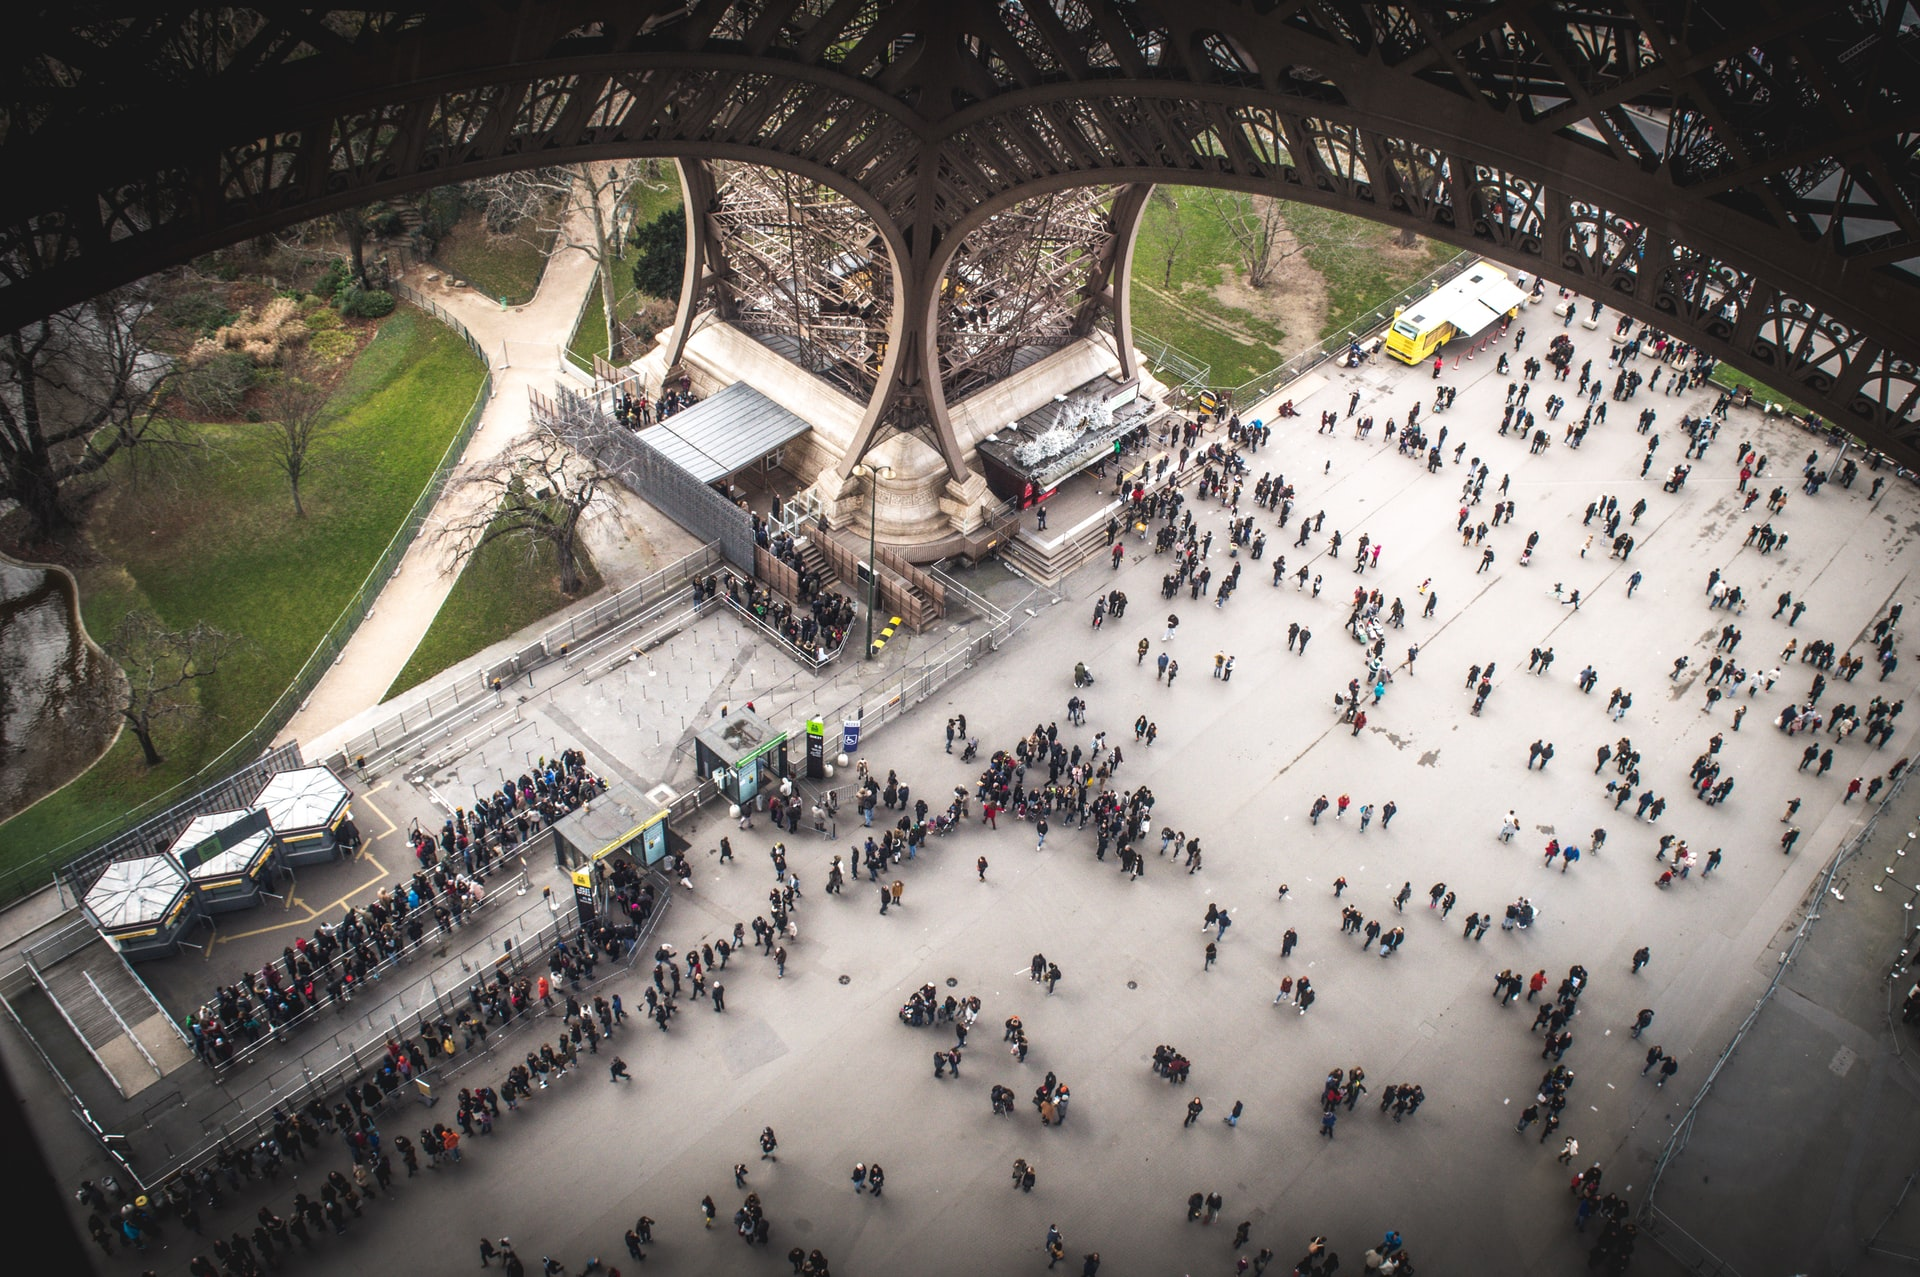 View of the forecourt below the Eiffel Tower from the first floor